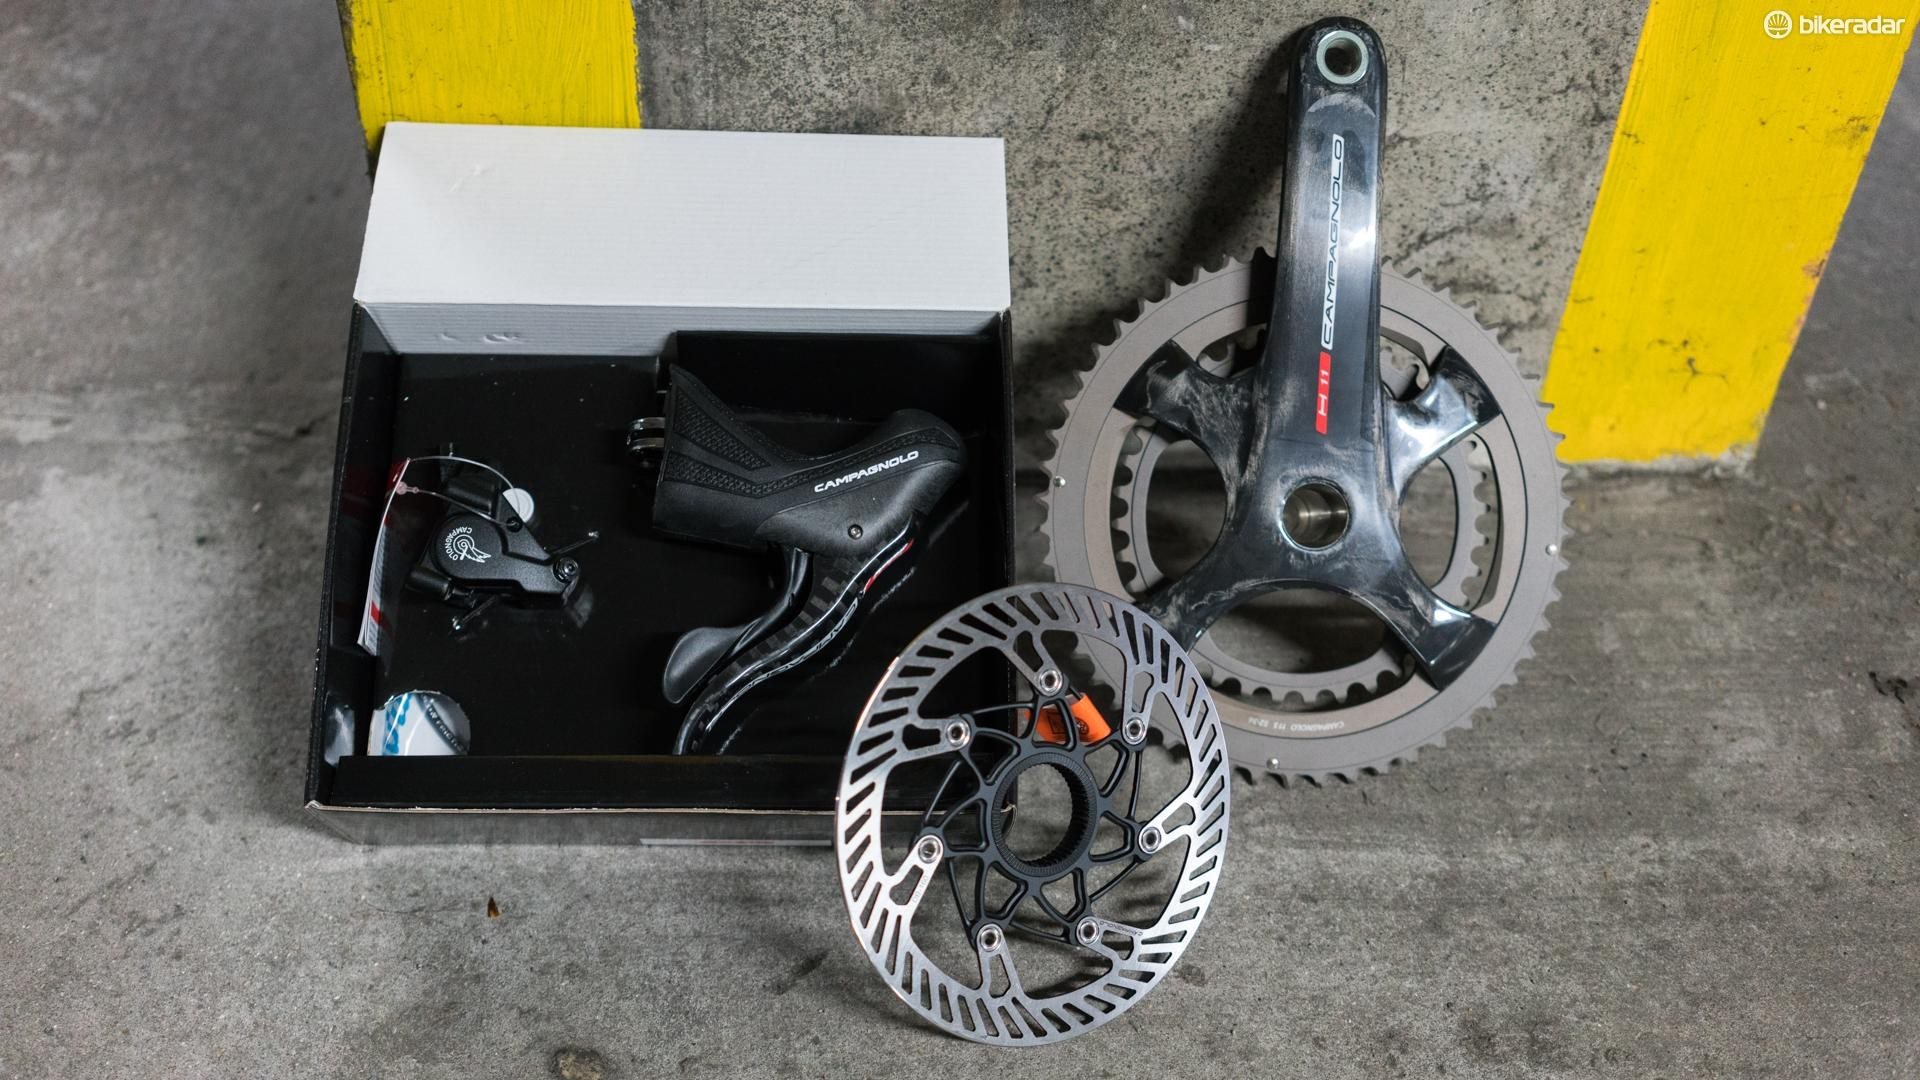 Even if you aren't a fan of Campagnolo components, it's difficult to deny the components look stunning